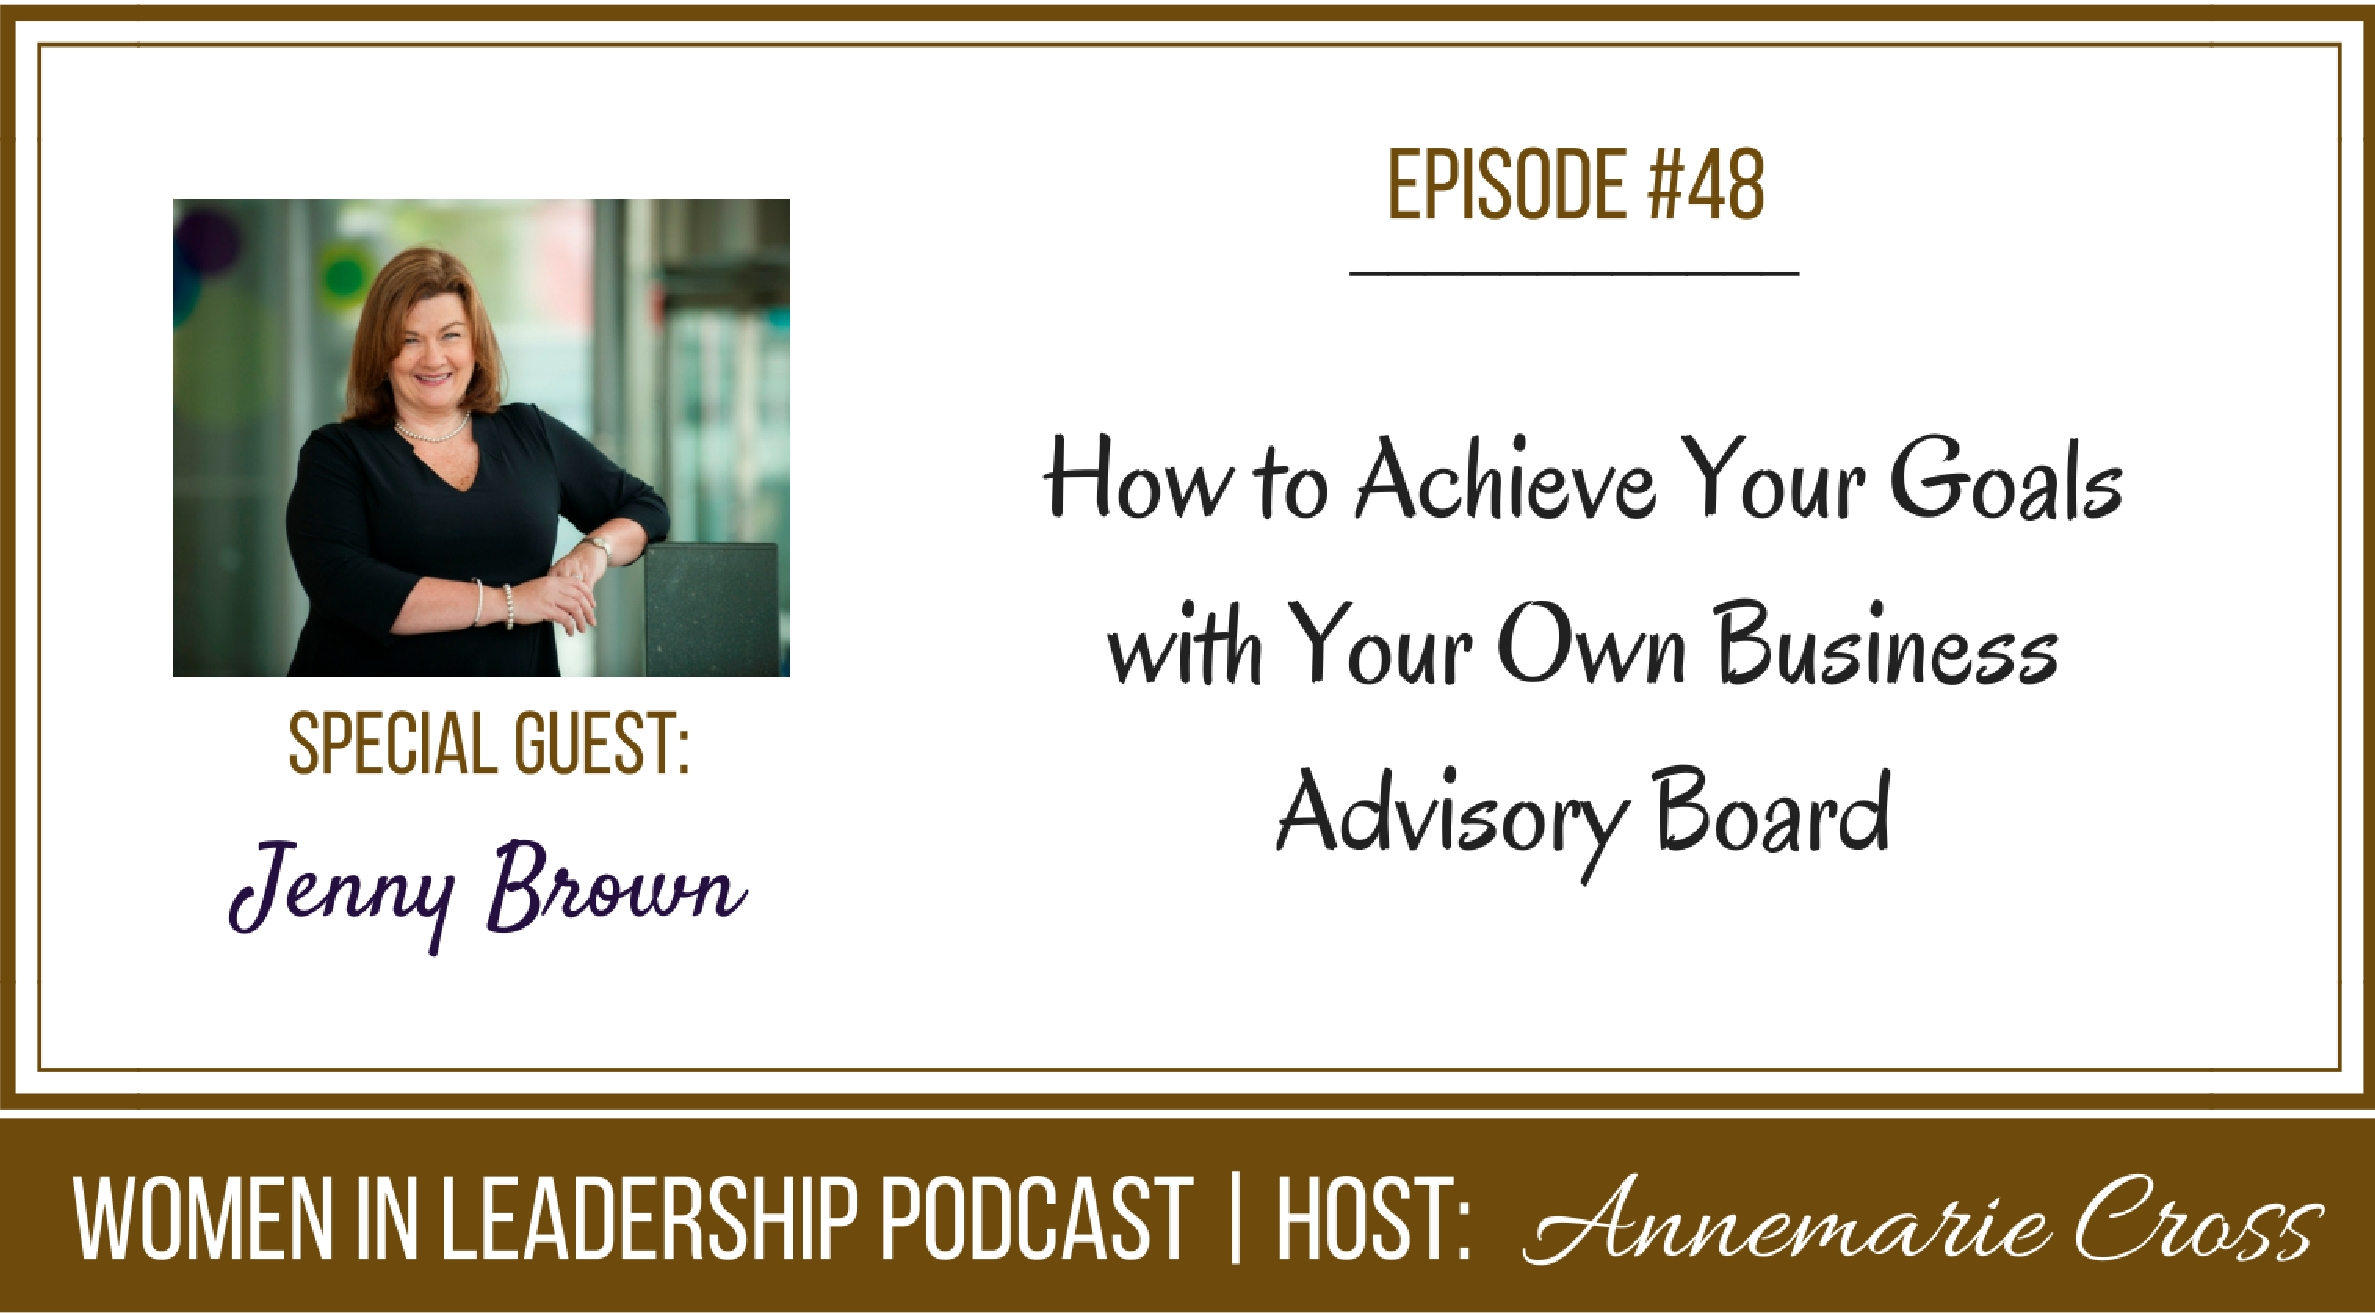 [Ep#48] How to Achieve Your Goals with Your Own Business Advisory Board [podcast]